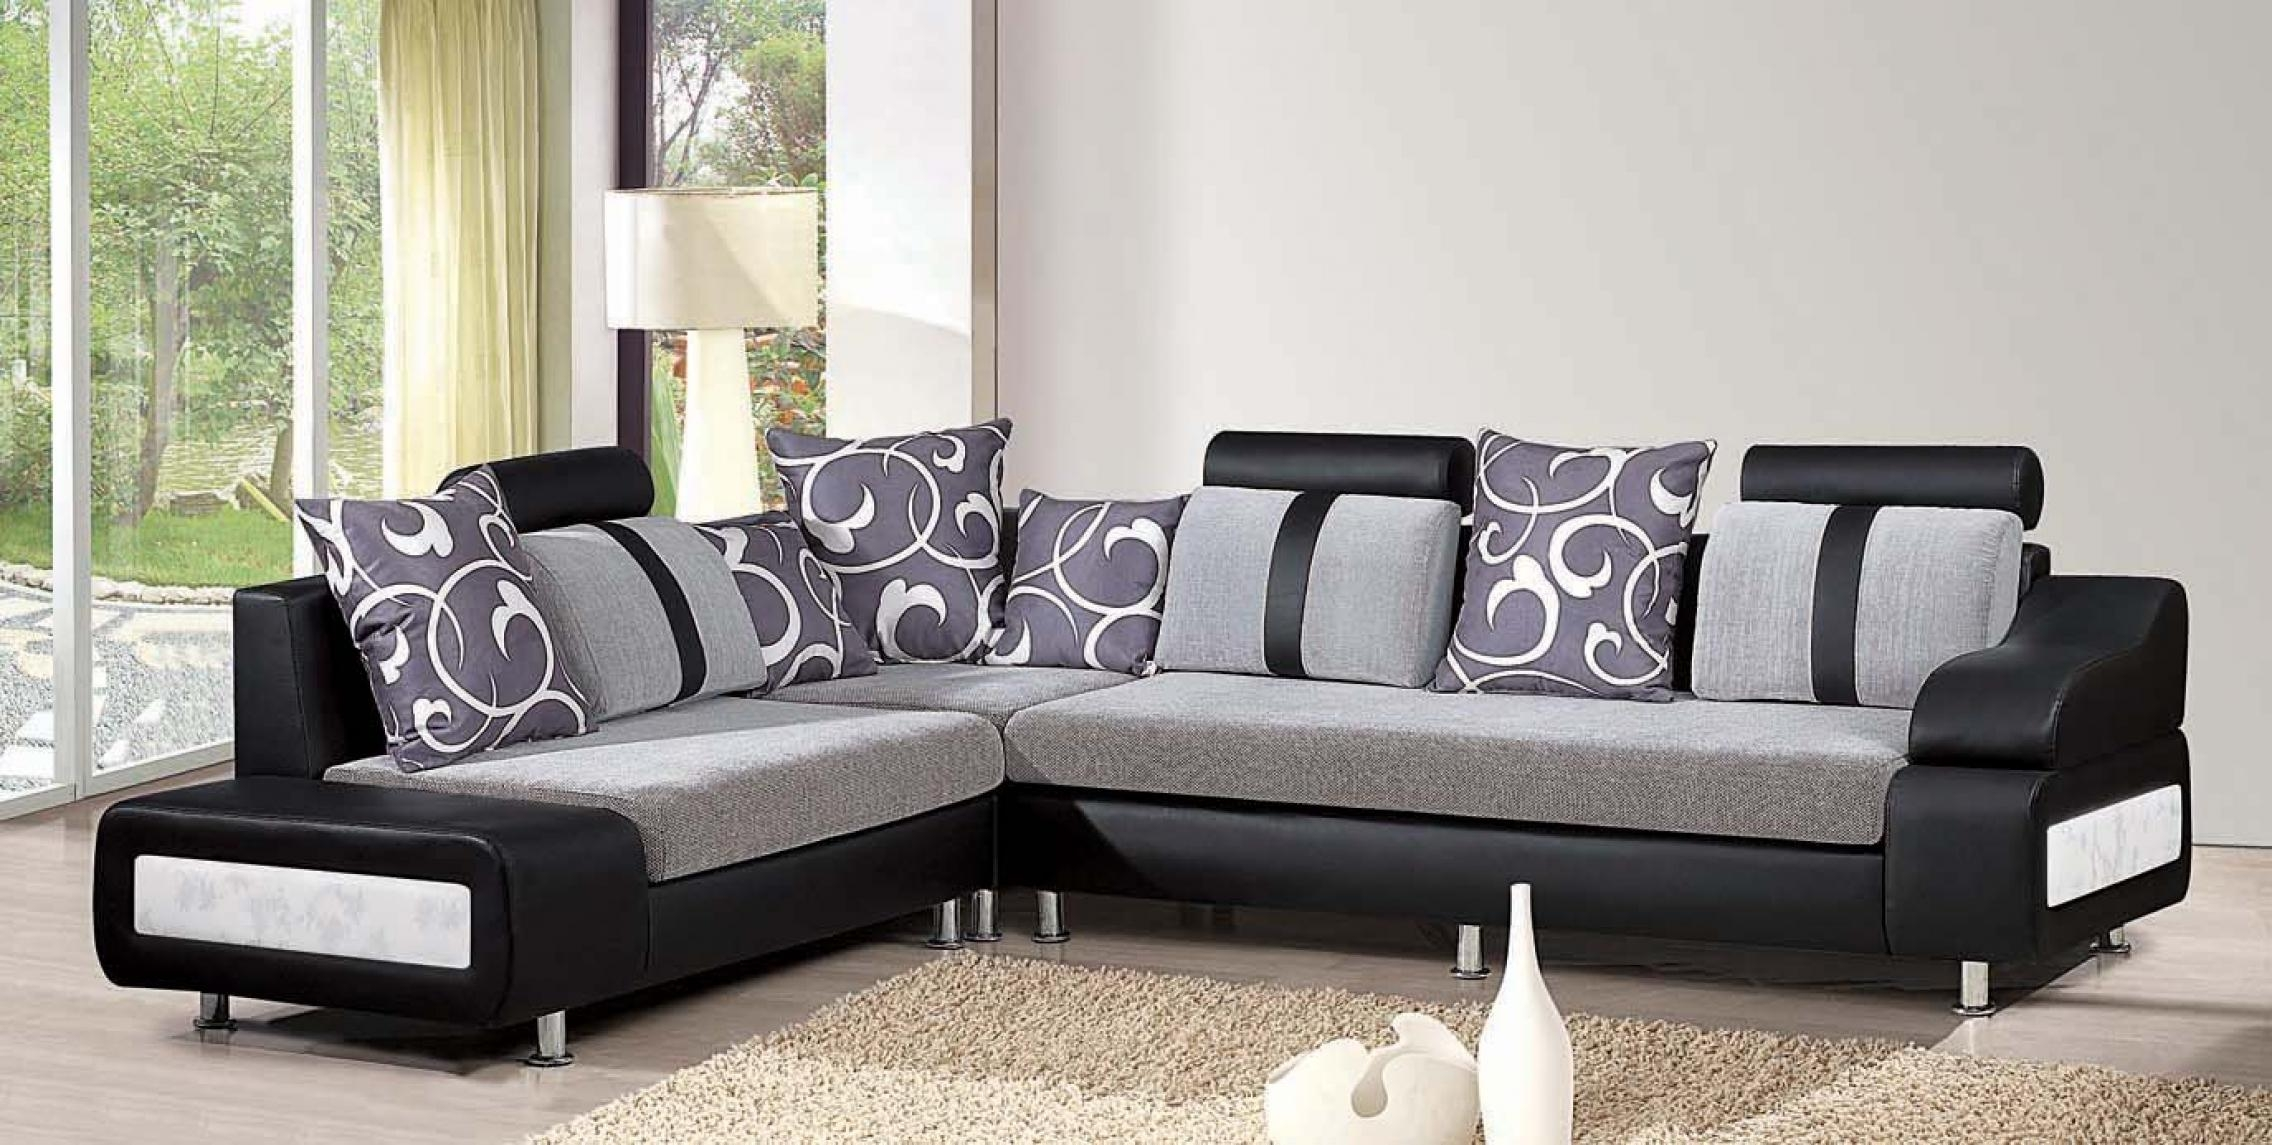 Sofa chairs for living room modern living room furniture for Latest living room furniture